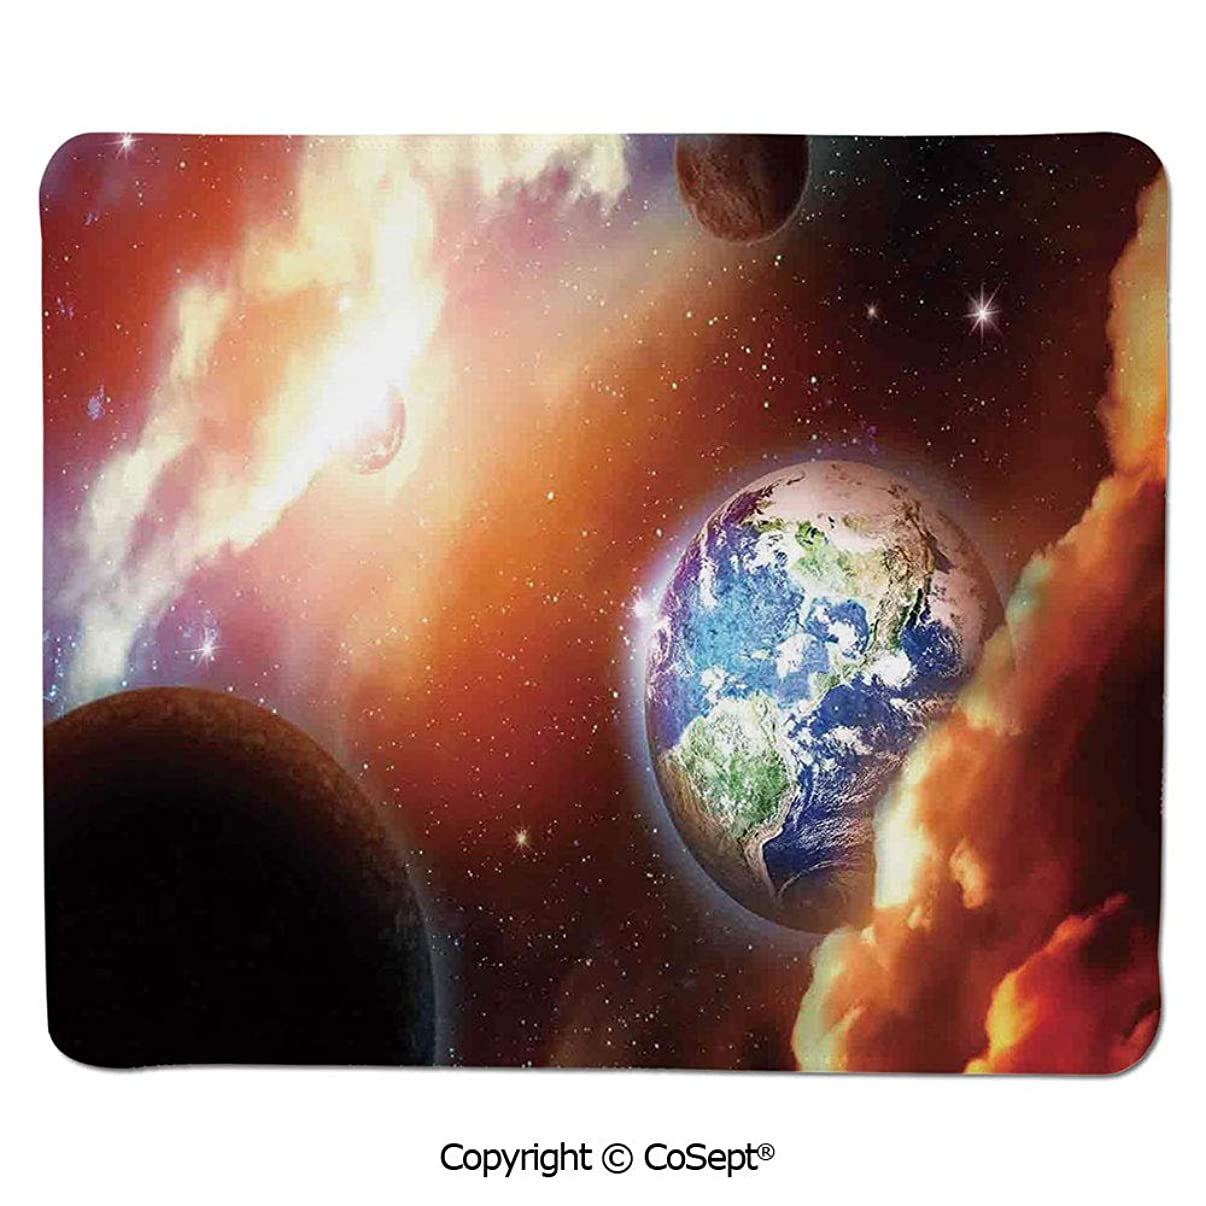 Gaming Mouse Pad,Dust Cloud Nebula Stars in Solar System Scene with Planet Earth Pluto and Neptune,for Laptop,Computer & PC (15.74